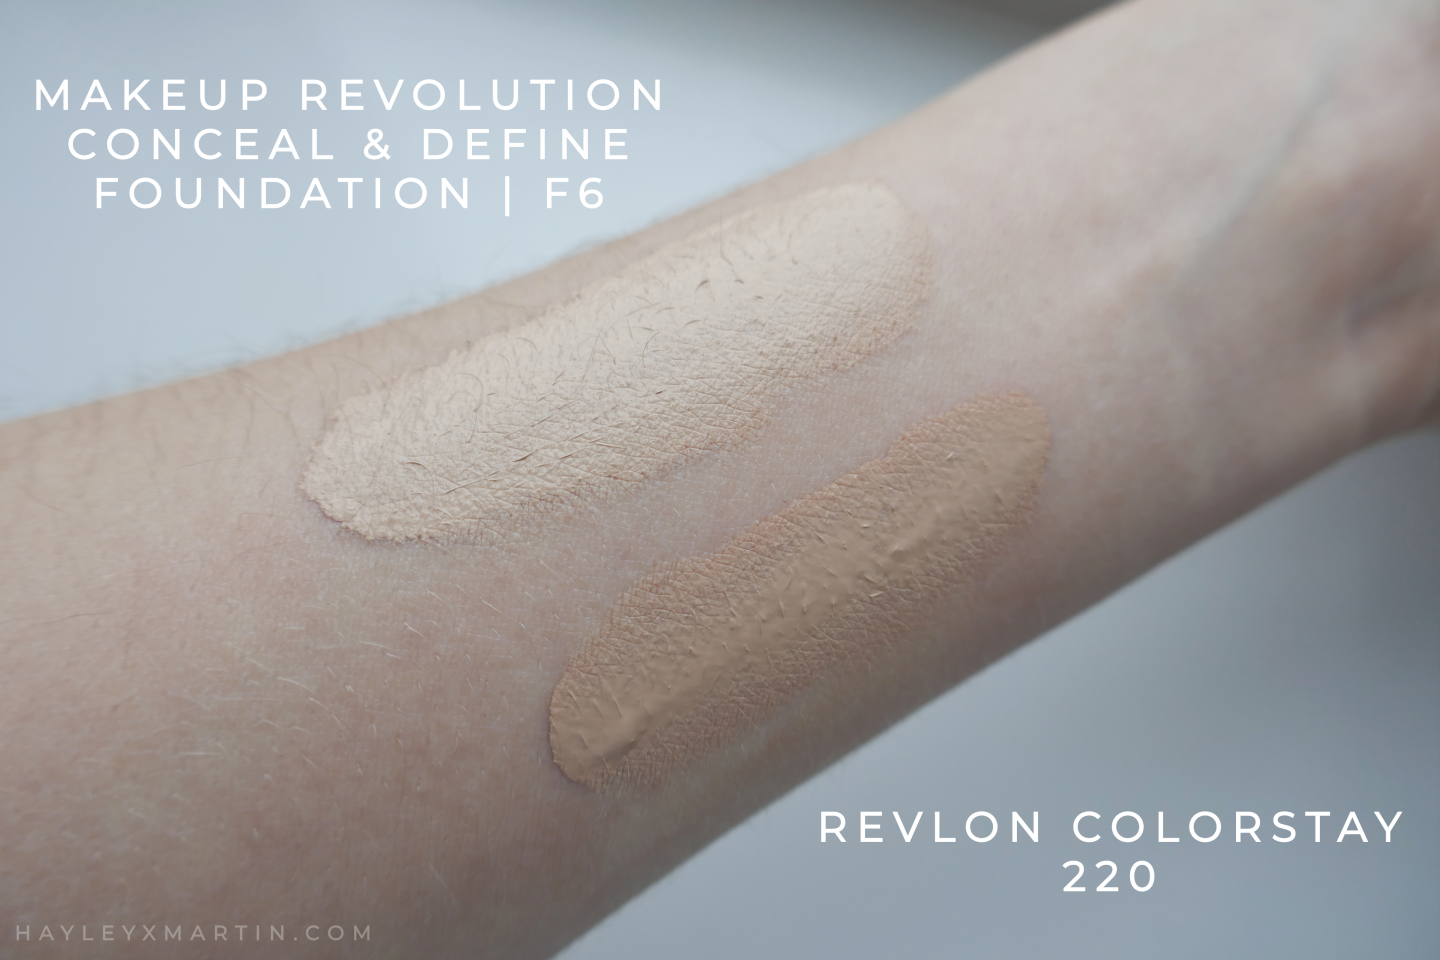 MAKEUP REVOLUTION CONCEAL & DEFINE F6 - REVLON COLORSTAY 220 SWATCH